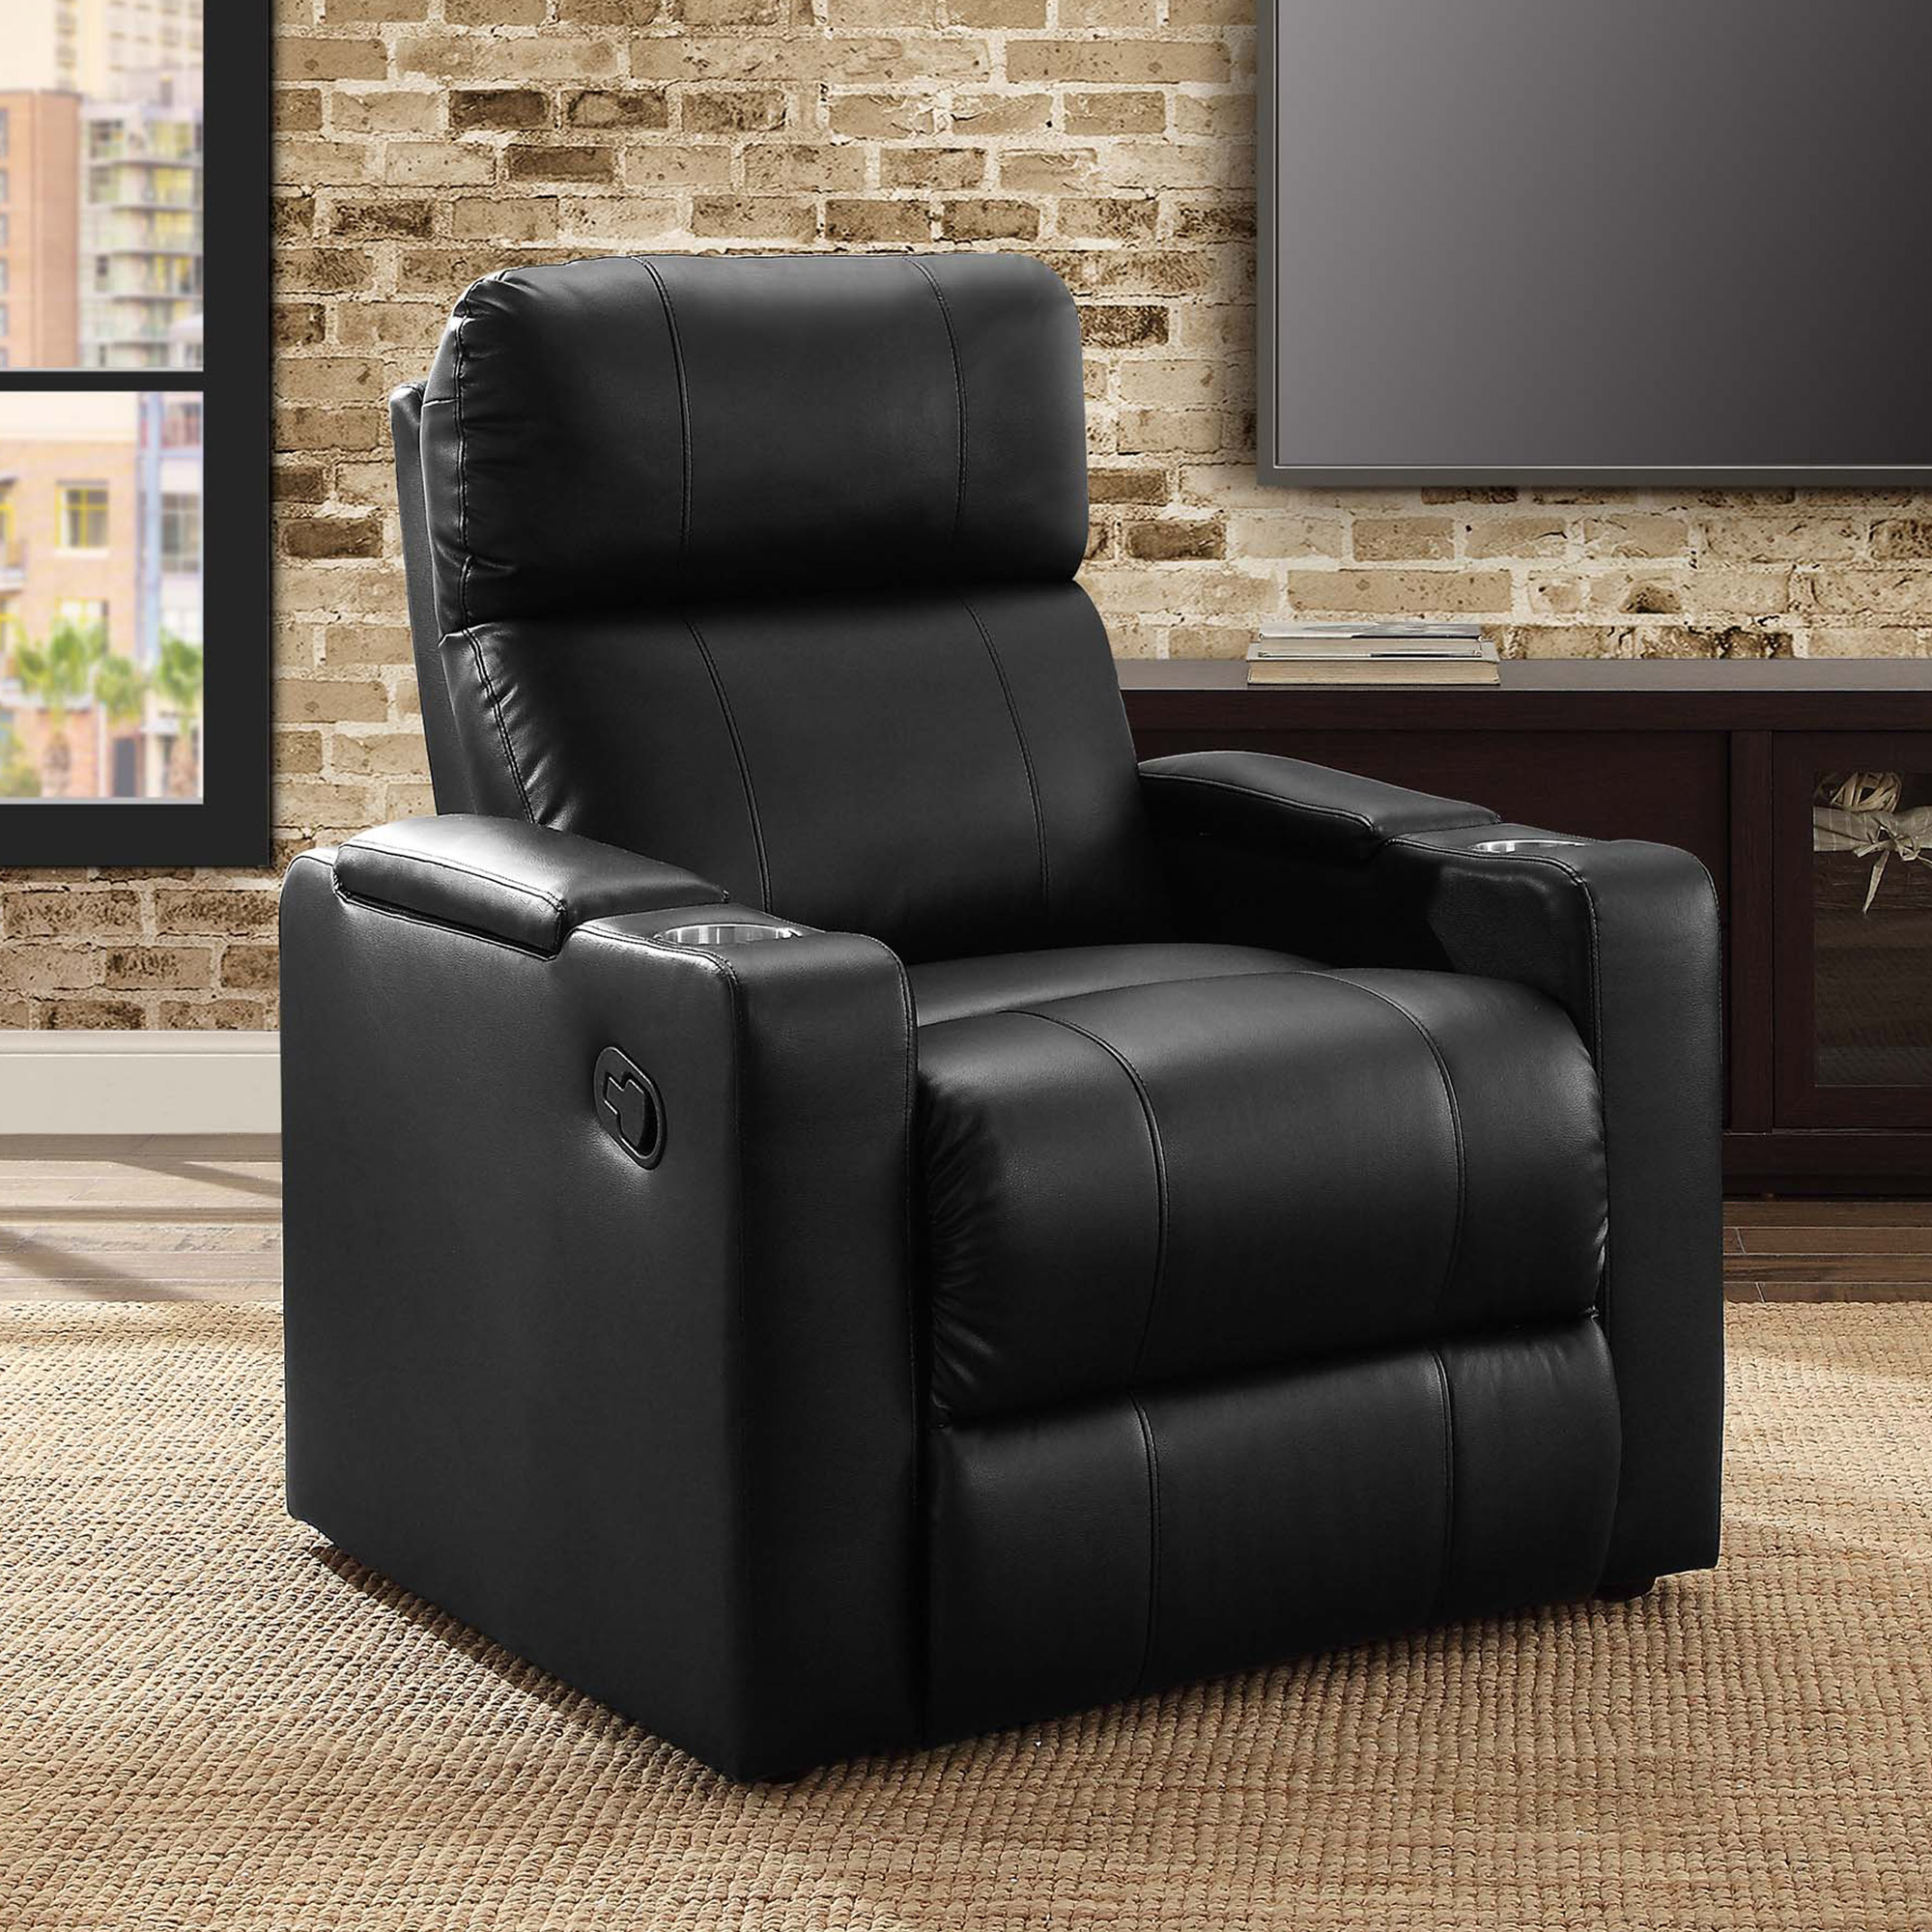 Mainstays Home Theater Recliner With In Arm Storage, Reclining Chair With  PU Leather Upholstery